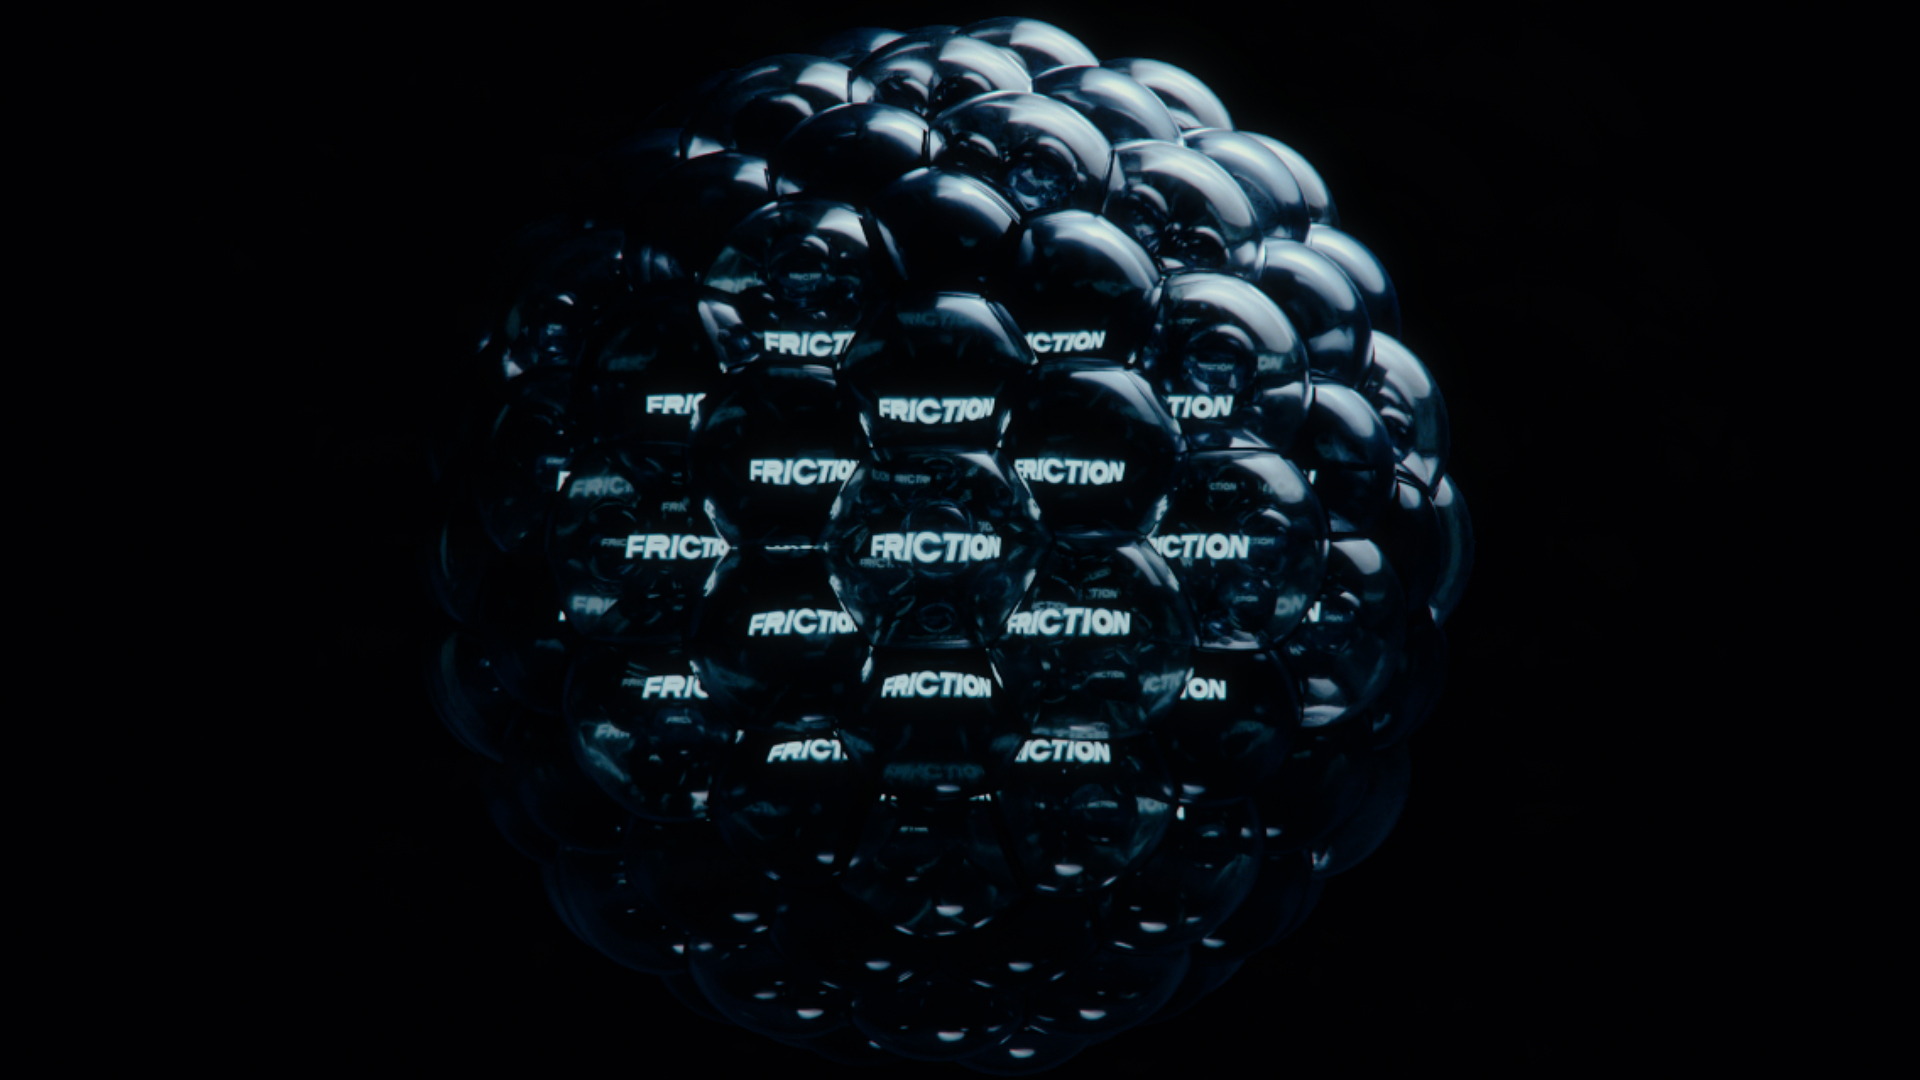 Friction Live Show Visuals